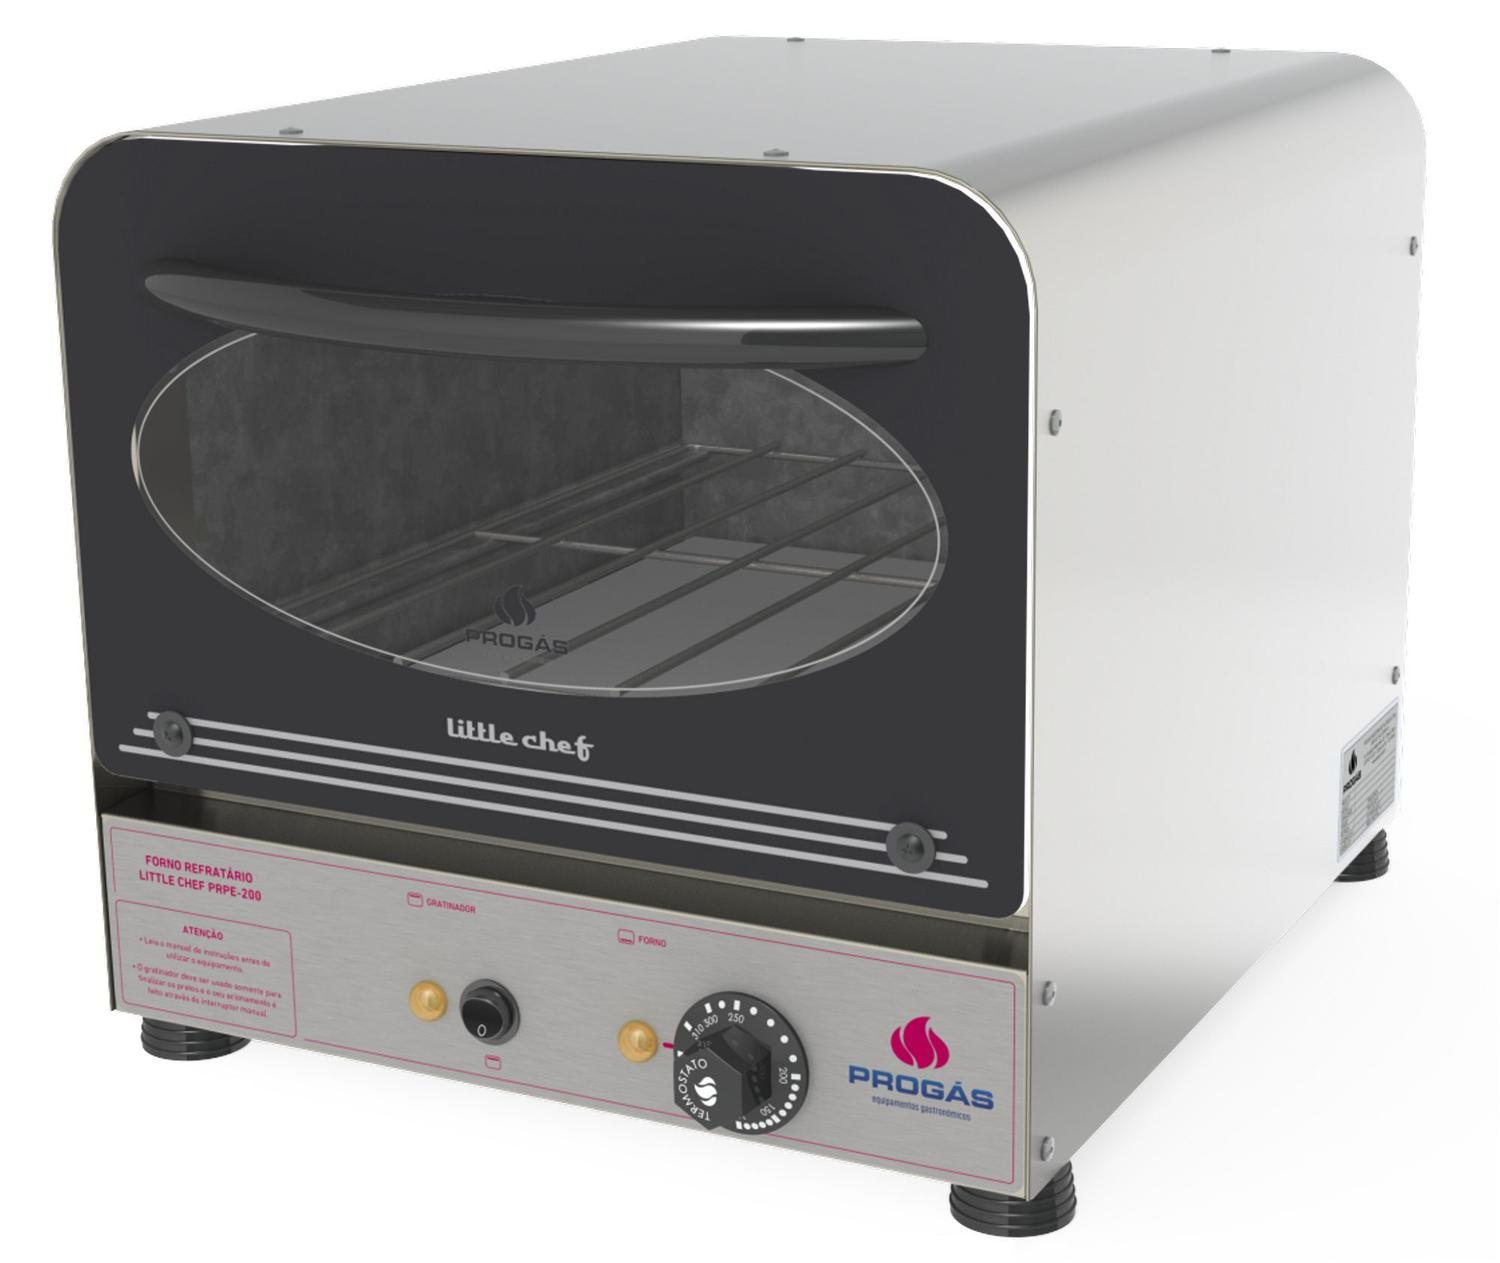 Forno Assador Little Chef Progás Inox Preto